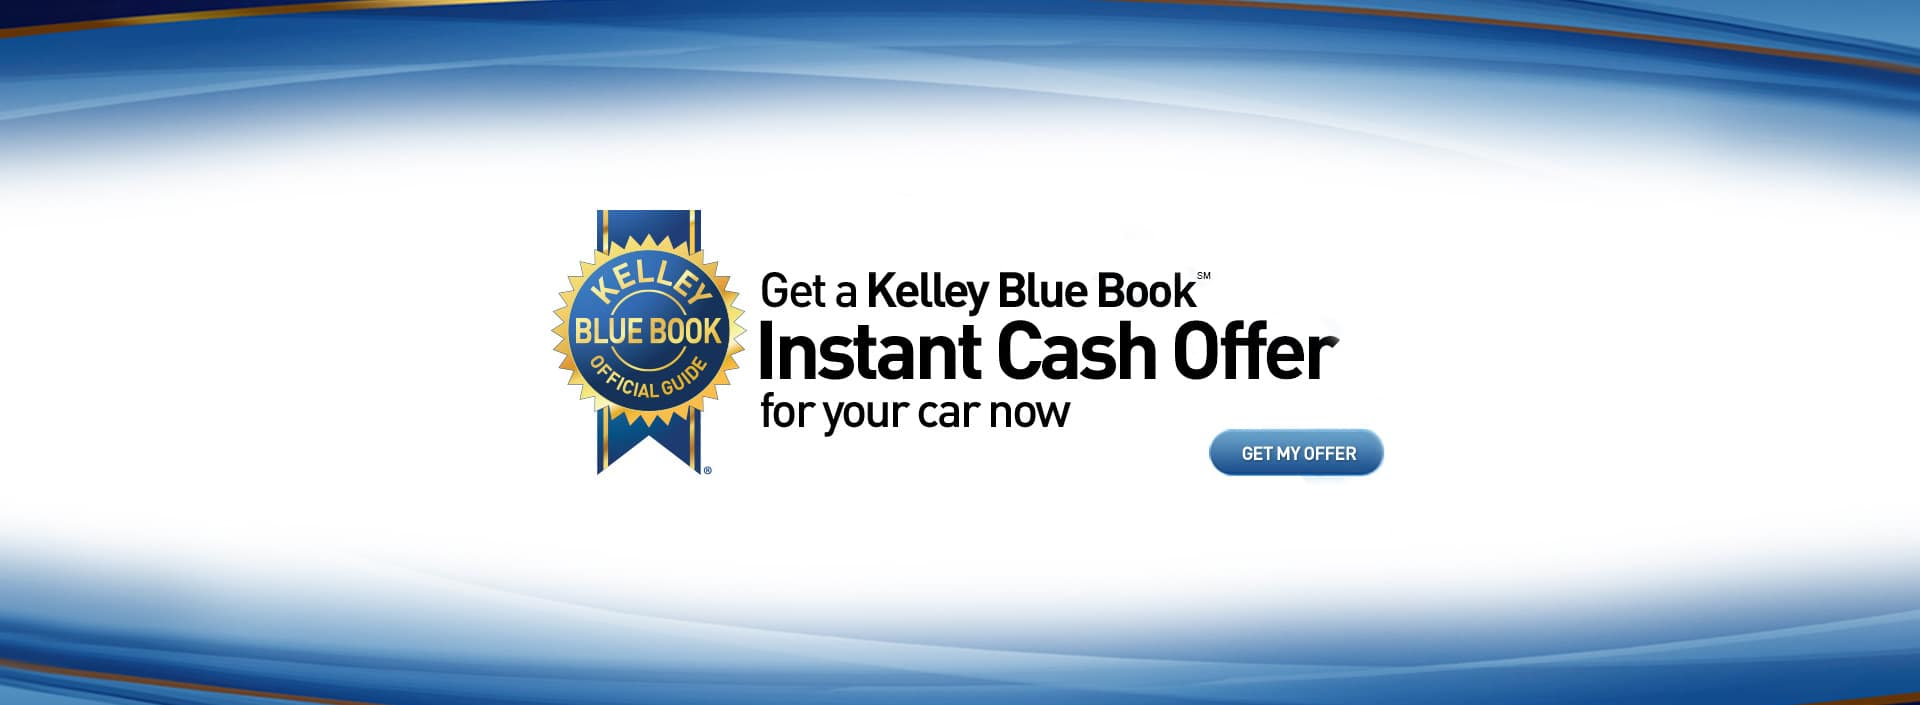 Kelly Blue Book Instant Cash Offer for your car now